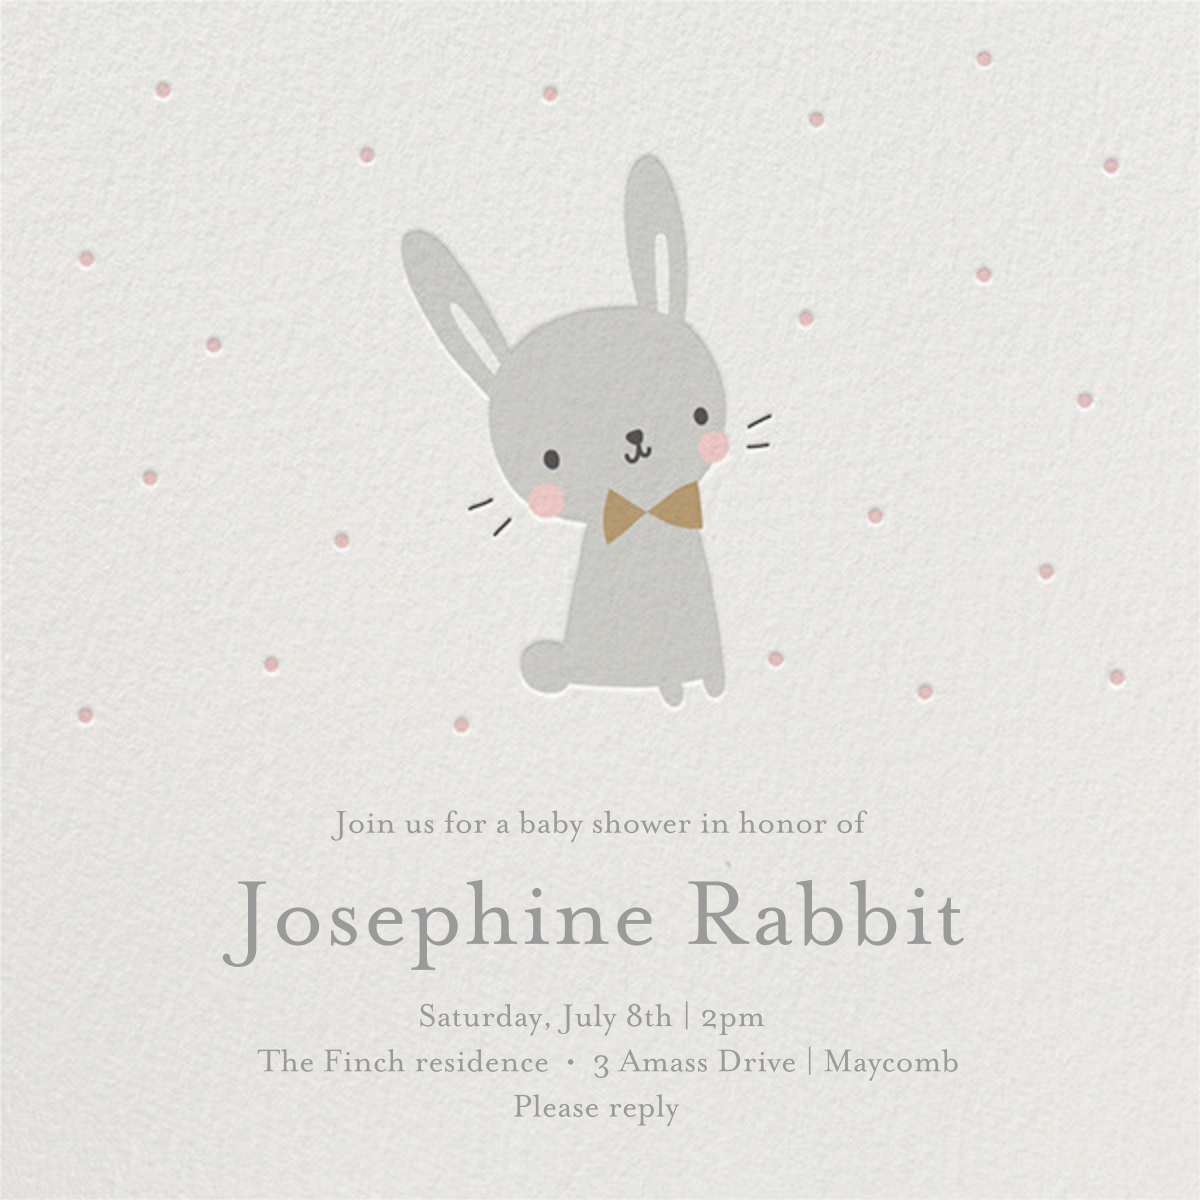 Baby Bunny - Little Cube - Woodland baby shower invitations